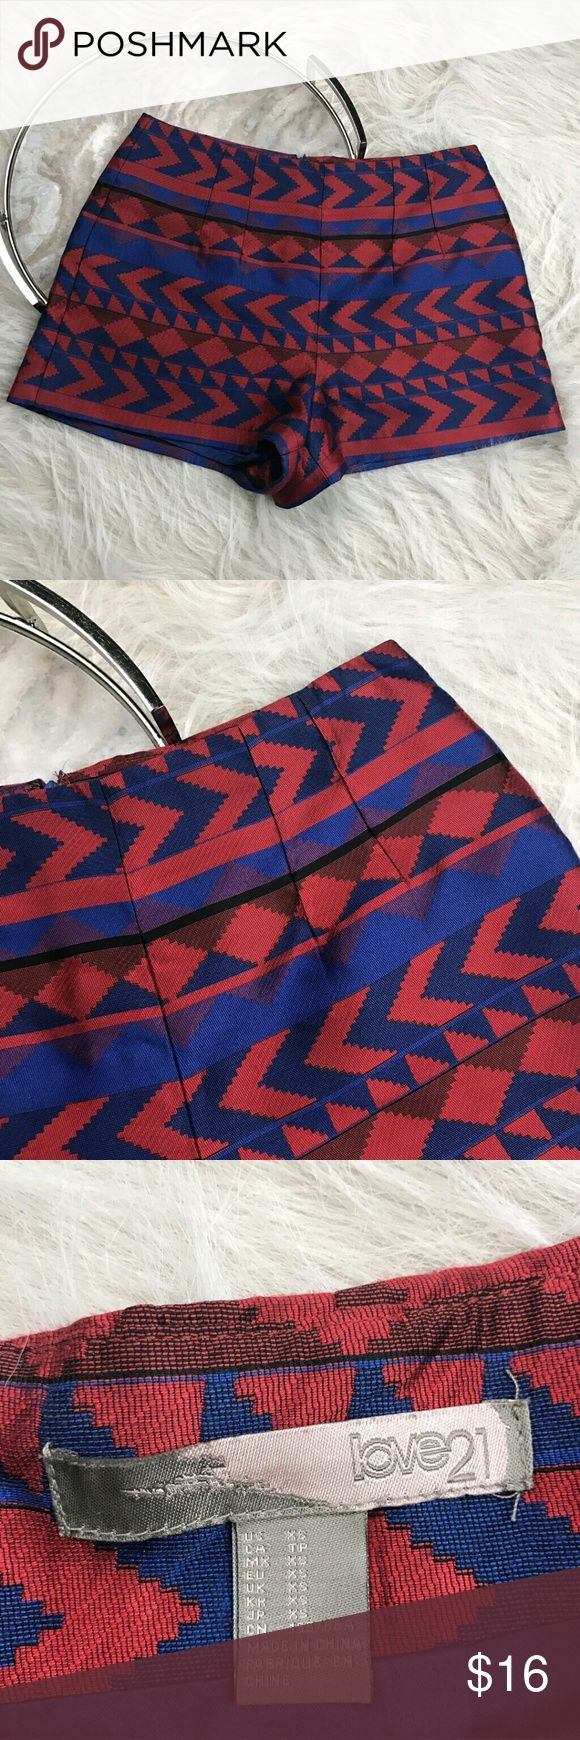 "Forever 21 Jacquard Aztec Shorts Forever 21 aztec print red blue high waist jacquard shorts. Womens size XS. Gently used, without flaws. See pictures for details.  Waist laying flat - 14"" Rise - 11"" Inseam - 2.5""  Inventory 04252017 Forever 21 Shorts"